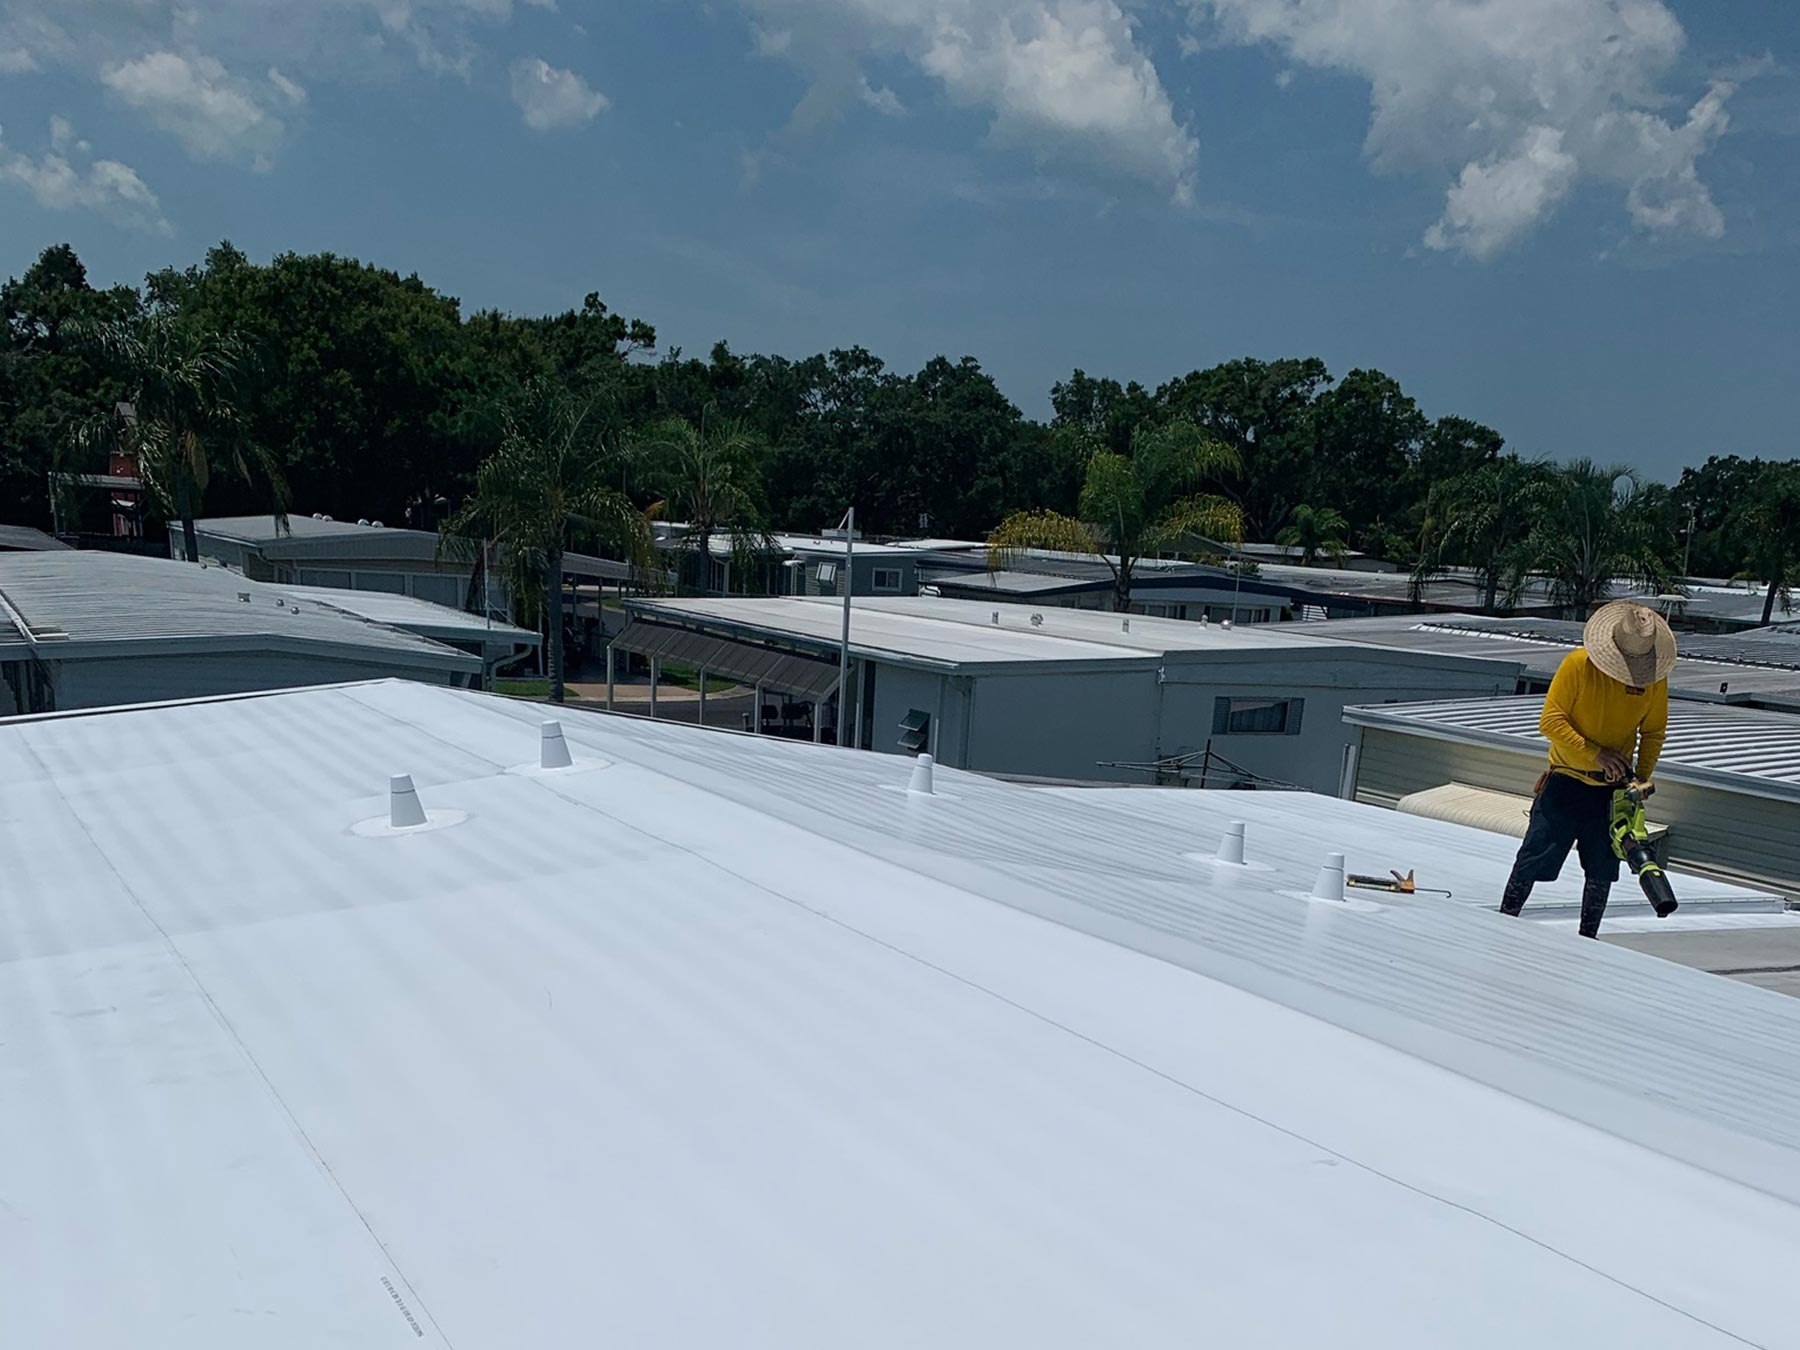 Mobile Home Roof Over in Largo, FL | Community Roofing of ... on mobile home construction, mobile home decks, mobile home room additions florida, mobile home roofing costs, mobile home metal roofing materials,